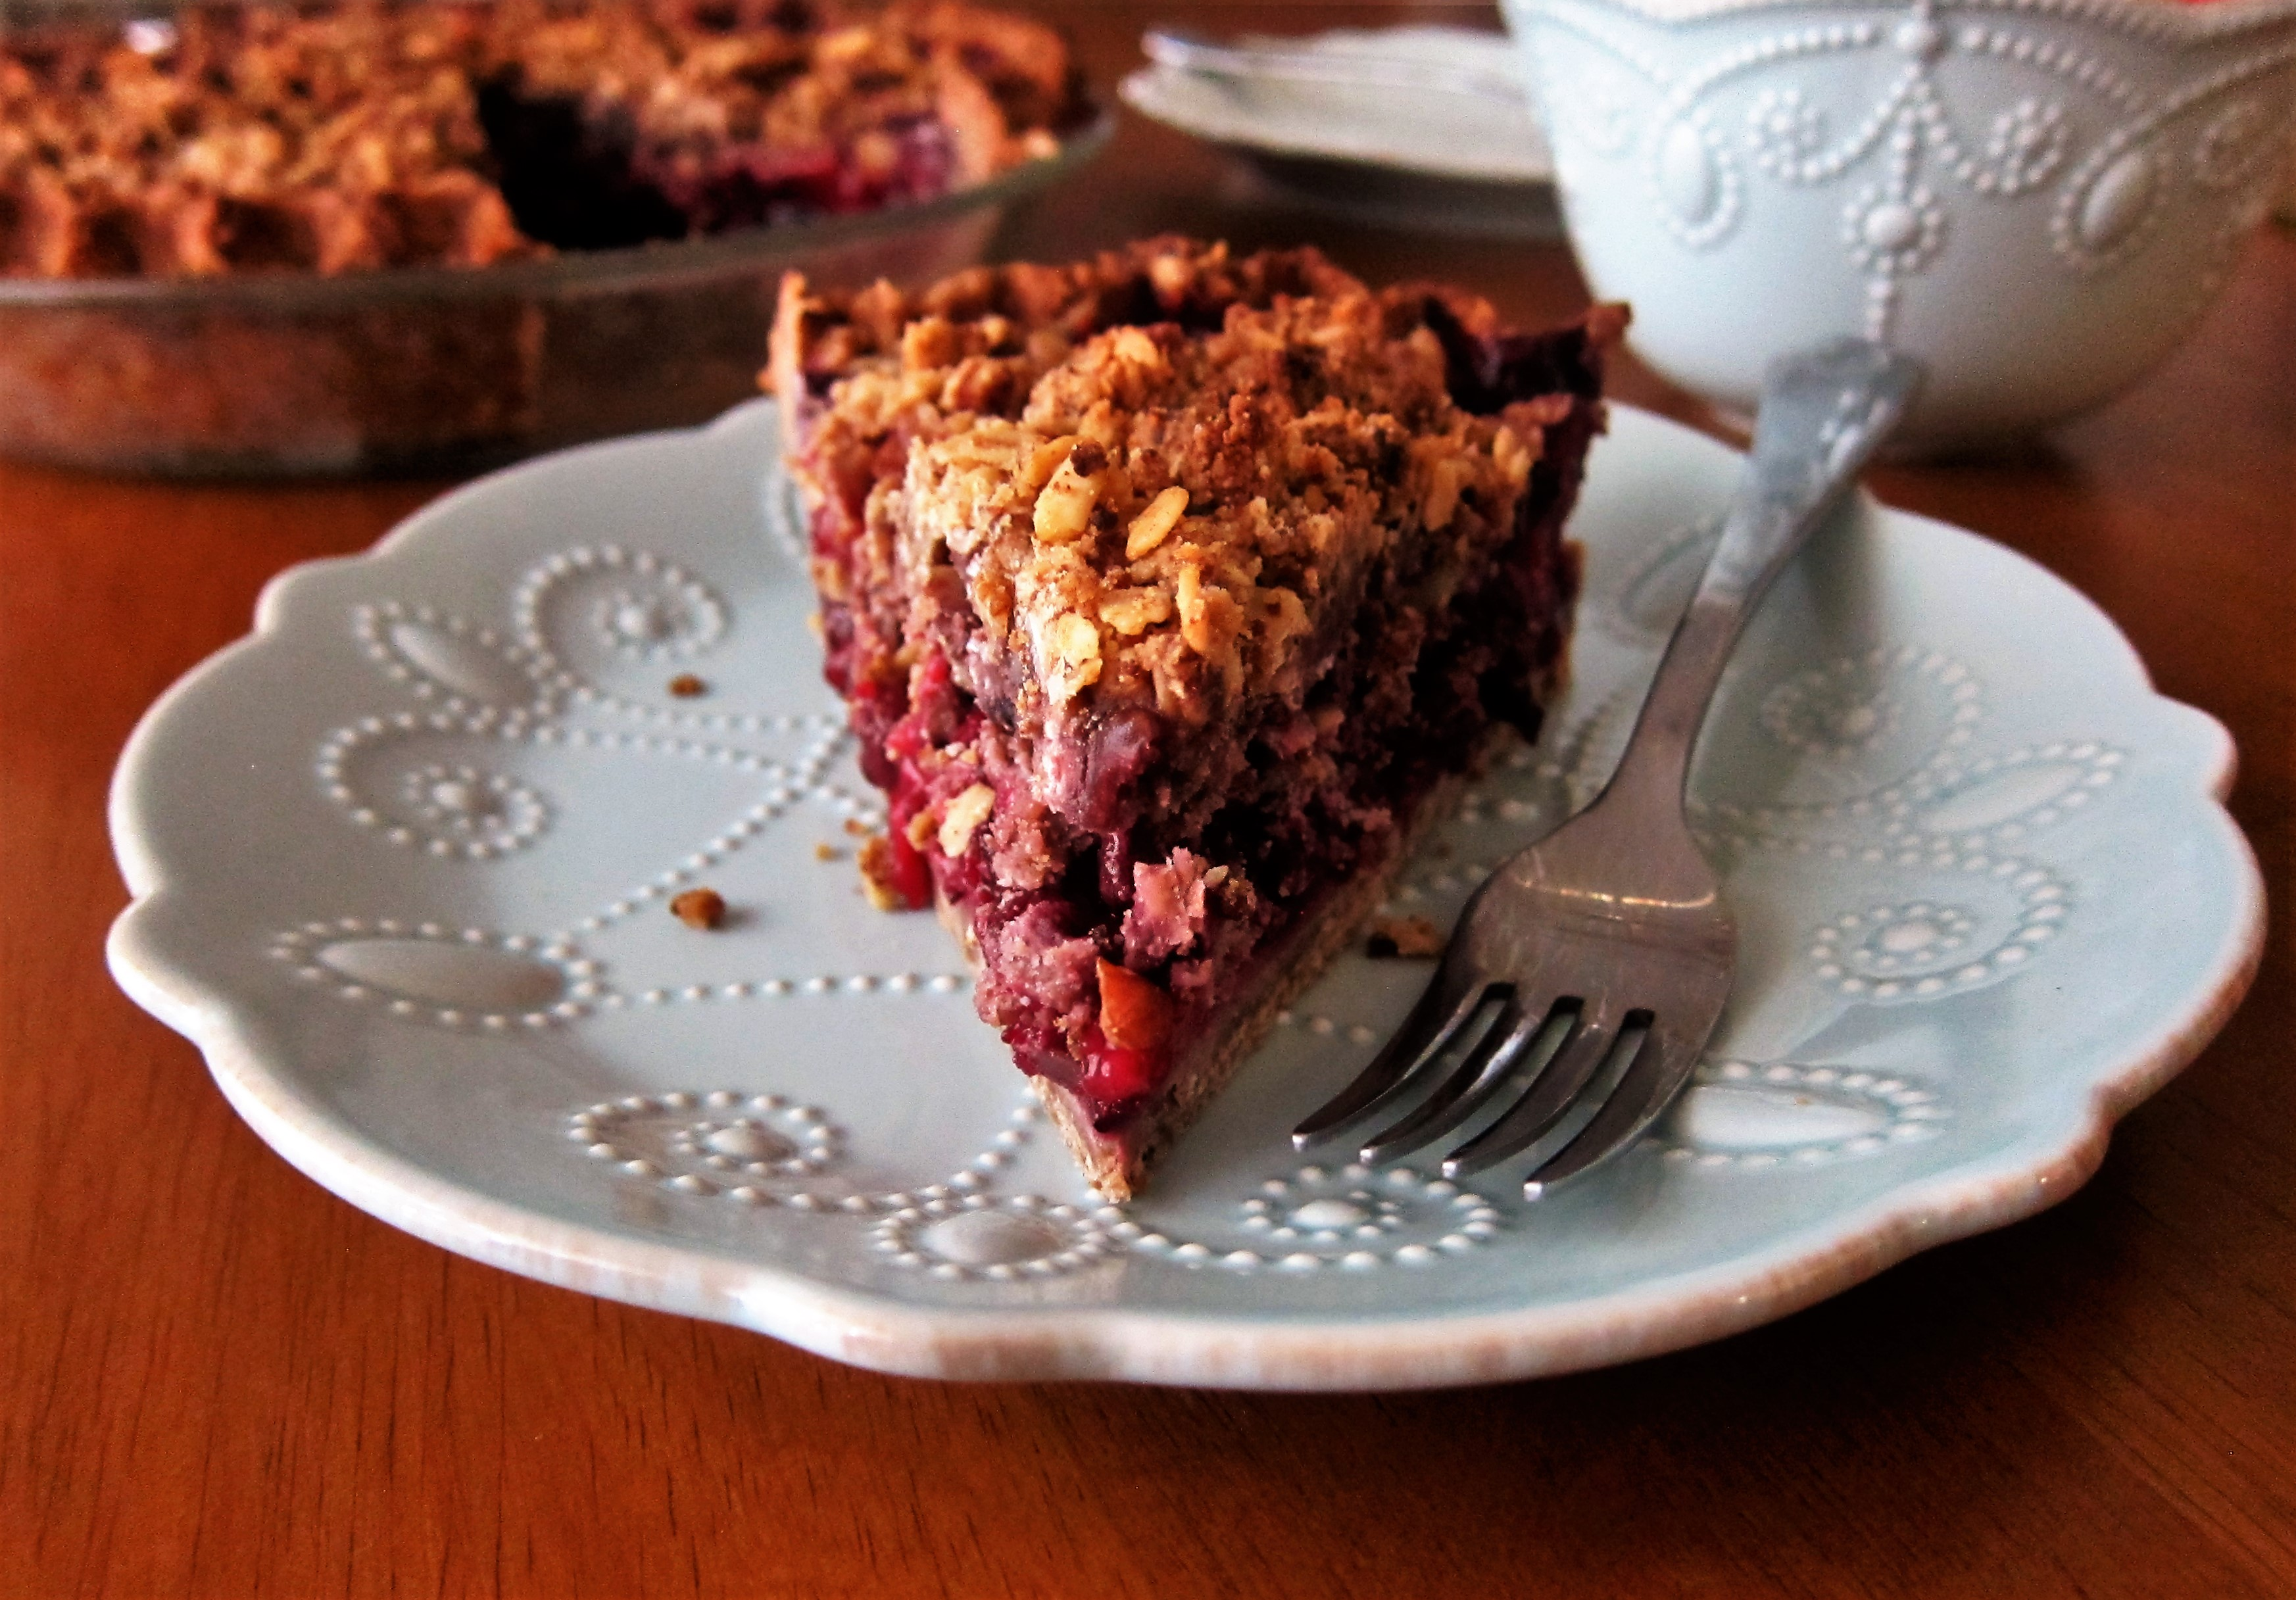 Vegan Mixed Berry Pie with Pecan Crumble Topping